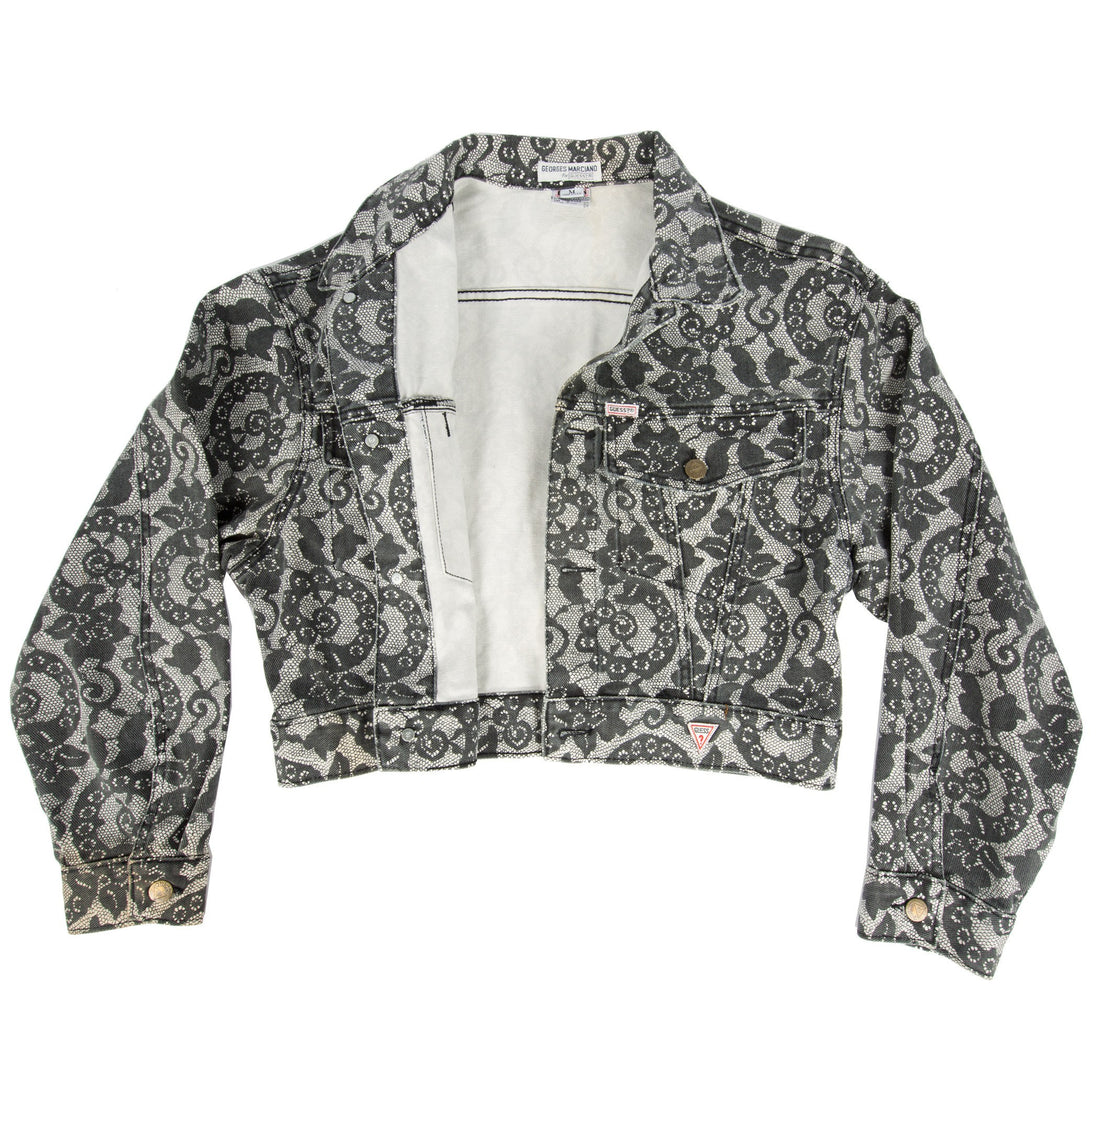 Vintage 80's Guess Marciano Floral Jacket - Vintage - Iron and Resin